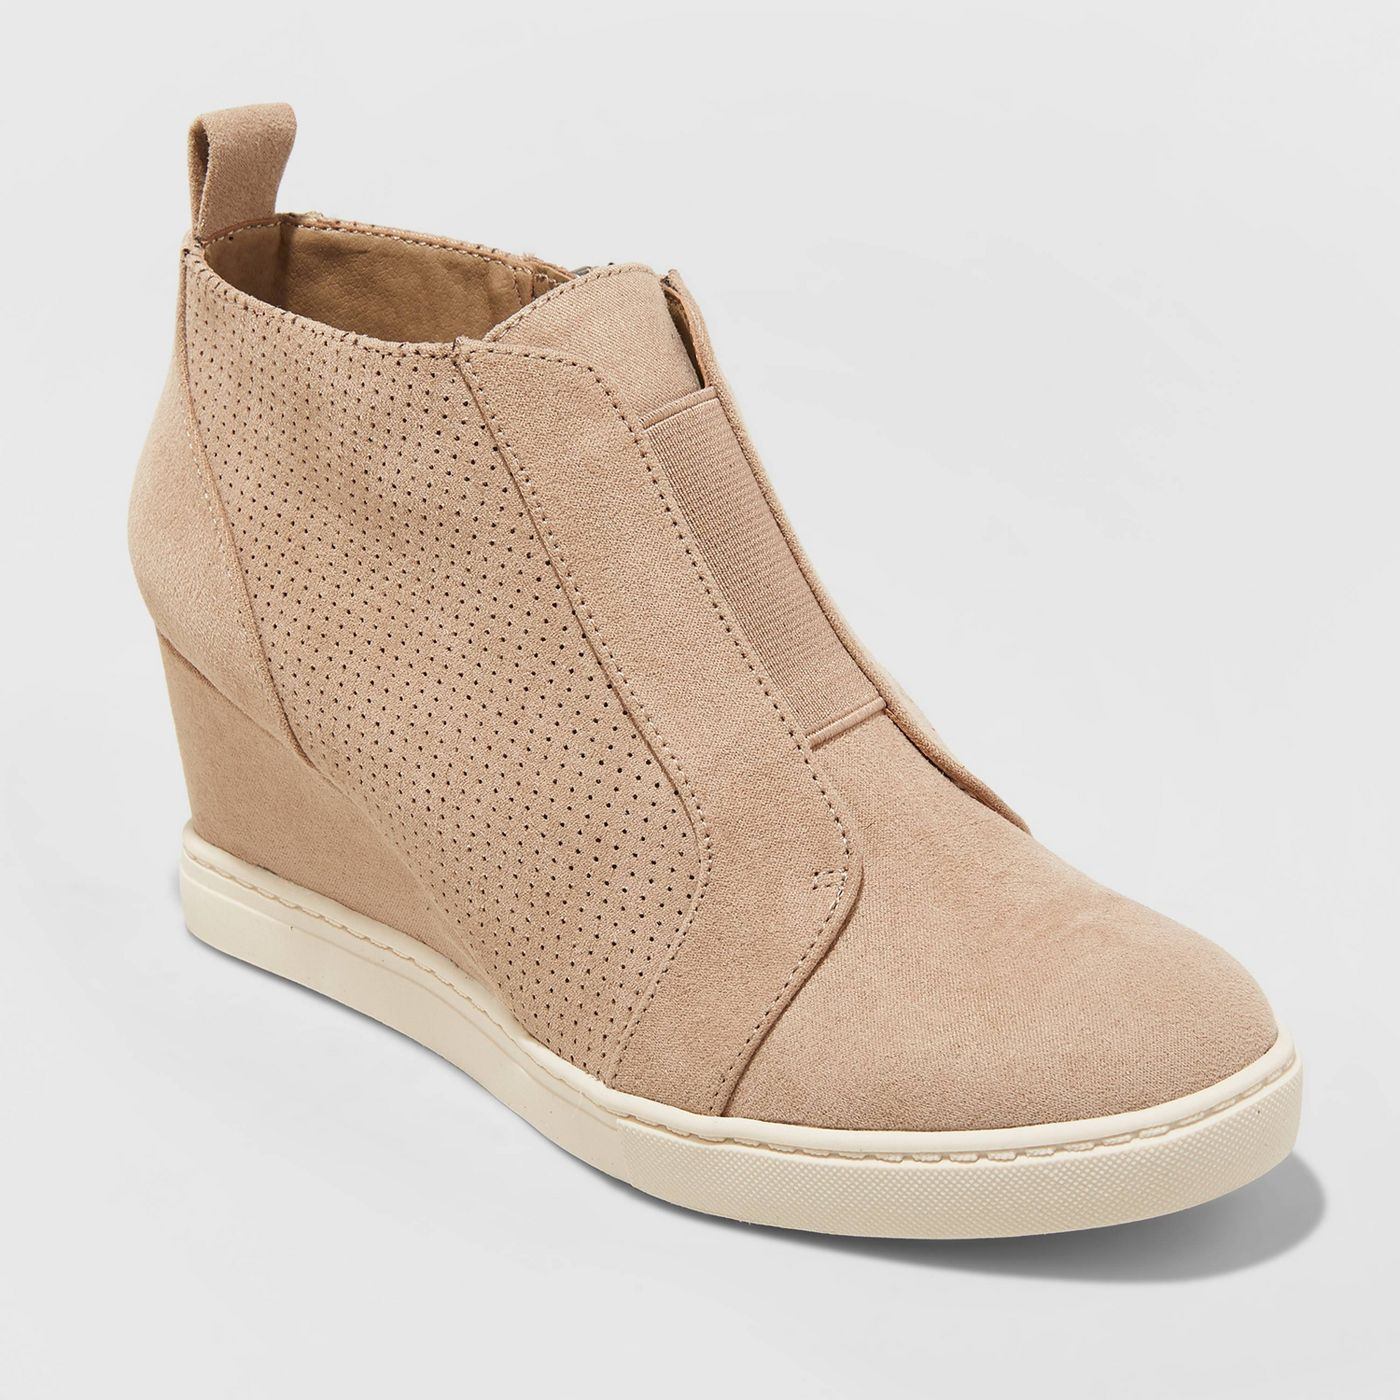 Microsuede sneaker boots for Fall 2019 are gorgeous and on-trend for the season.